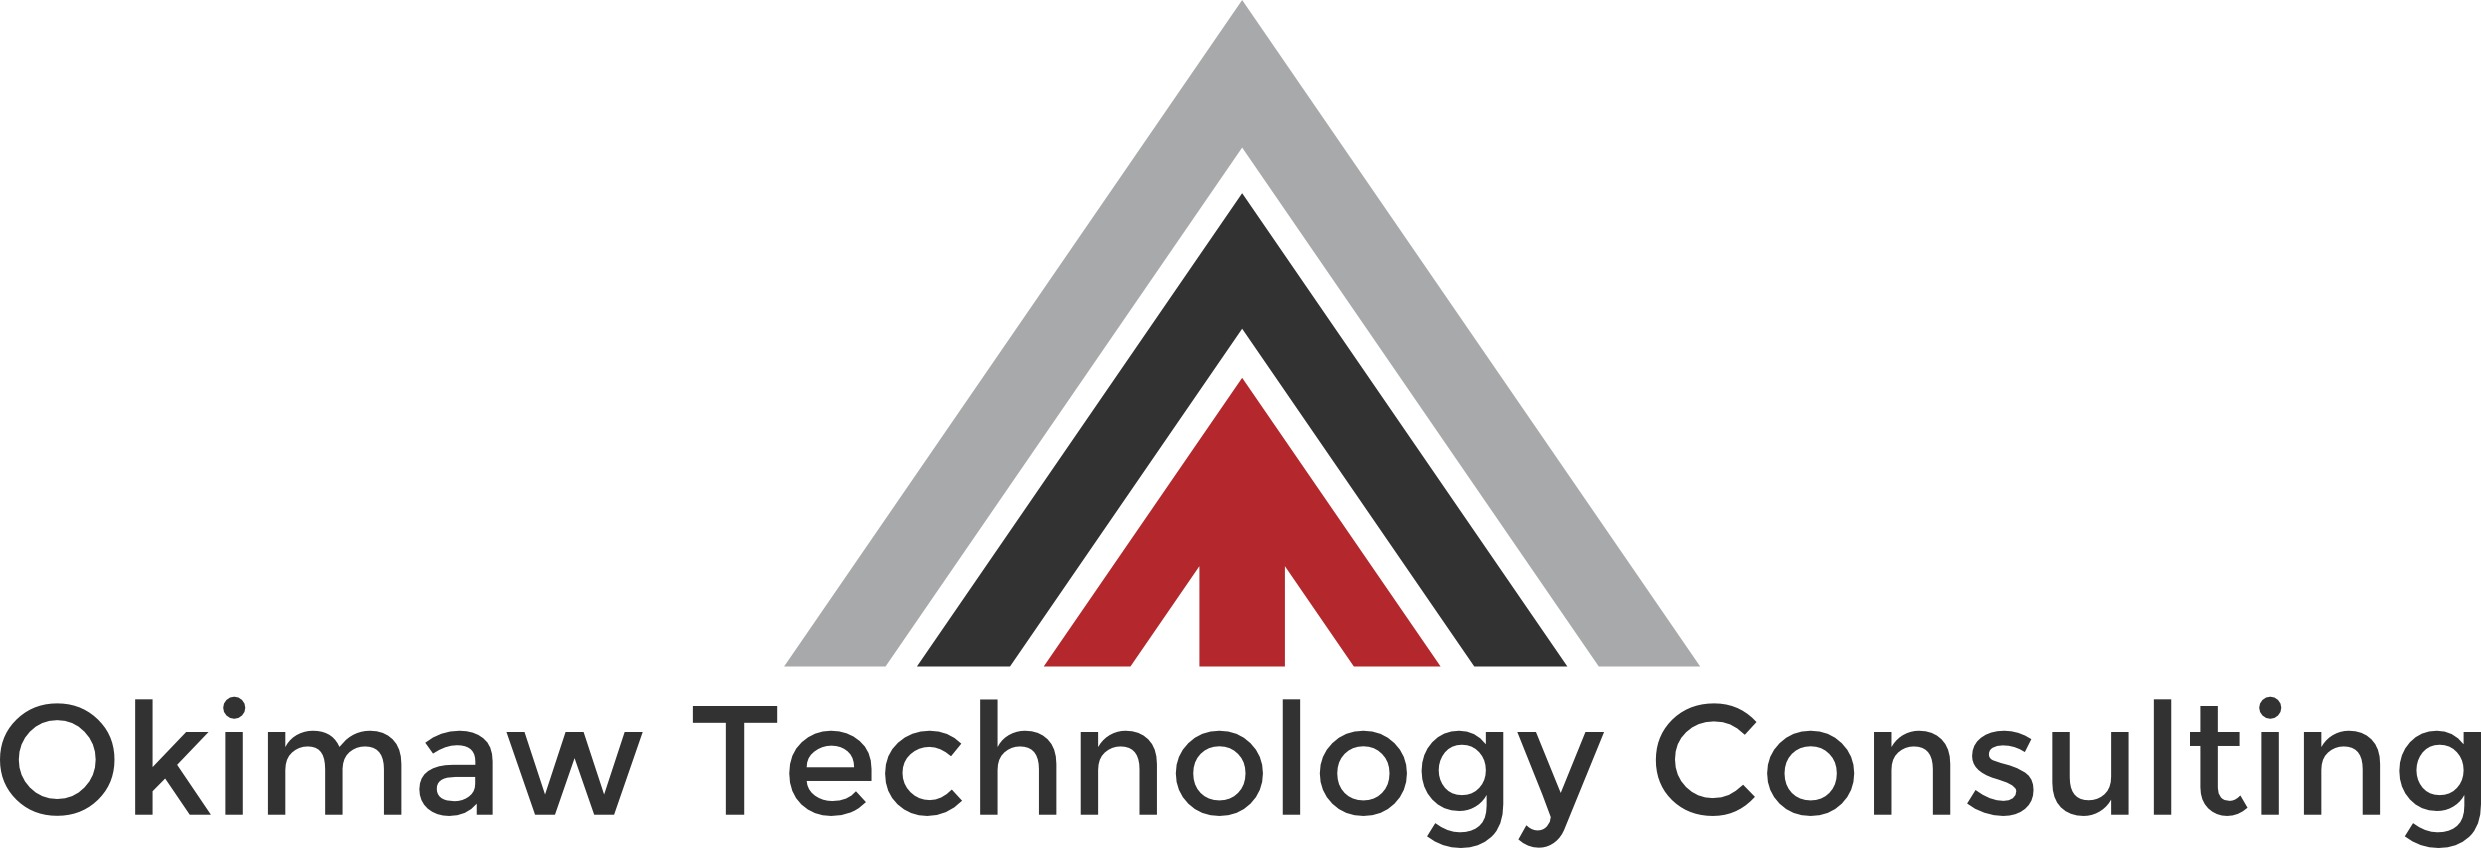 Okimaw Technology Consulting